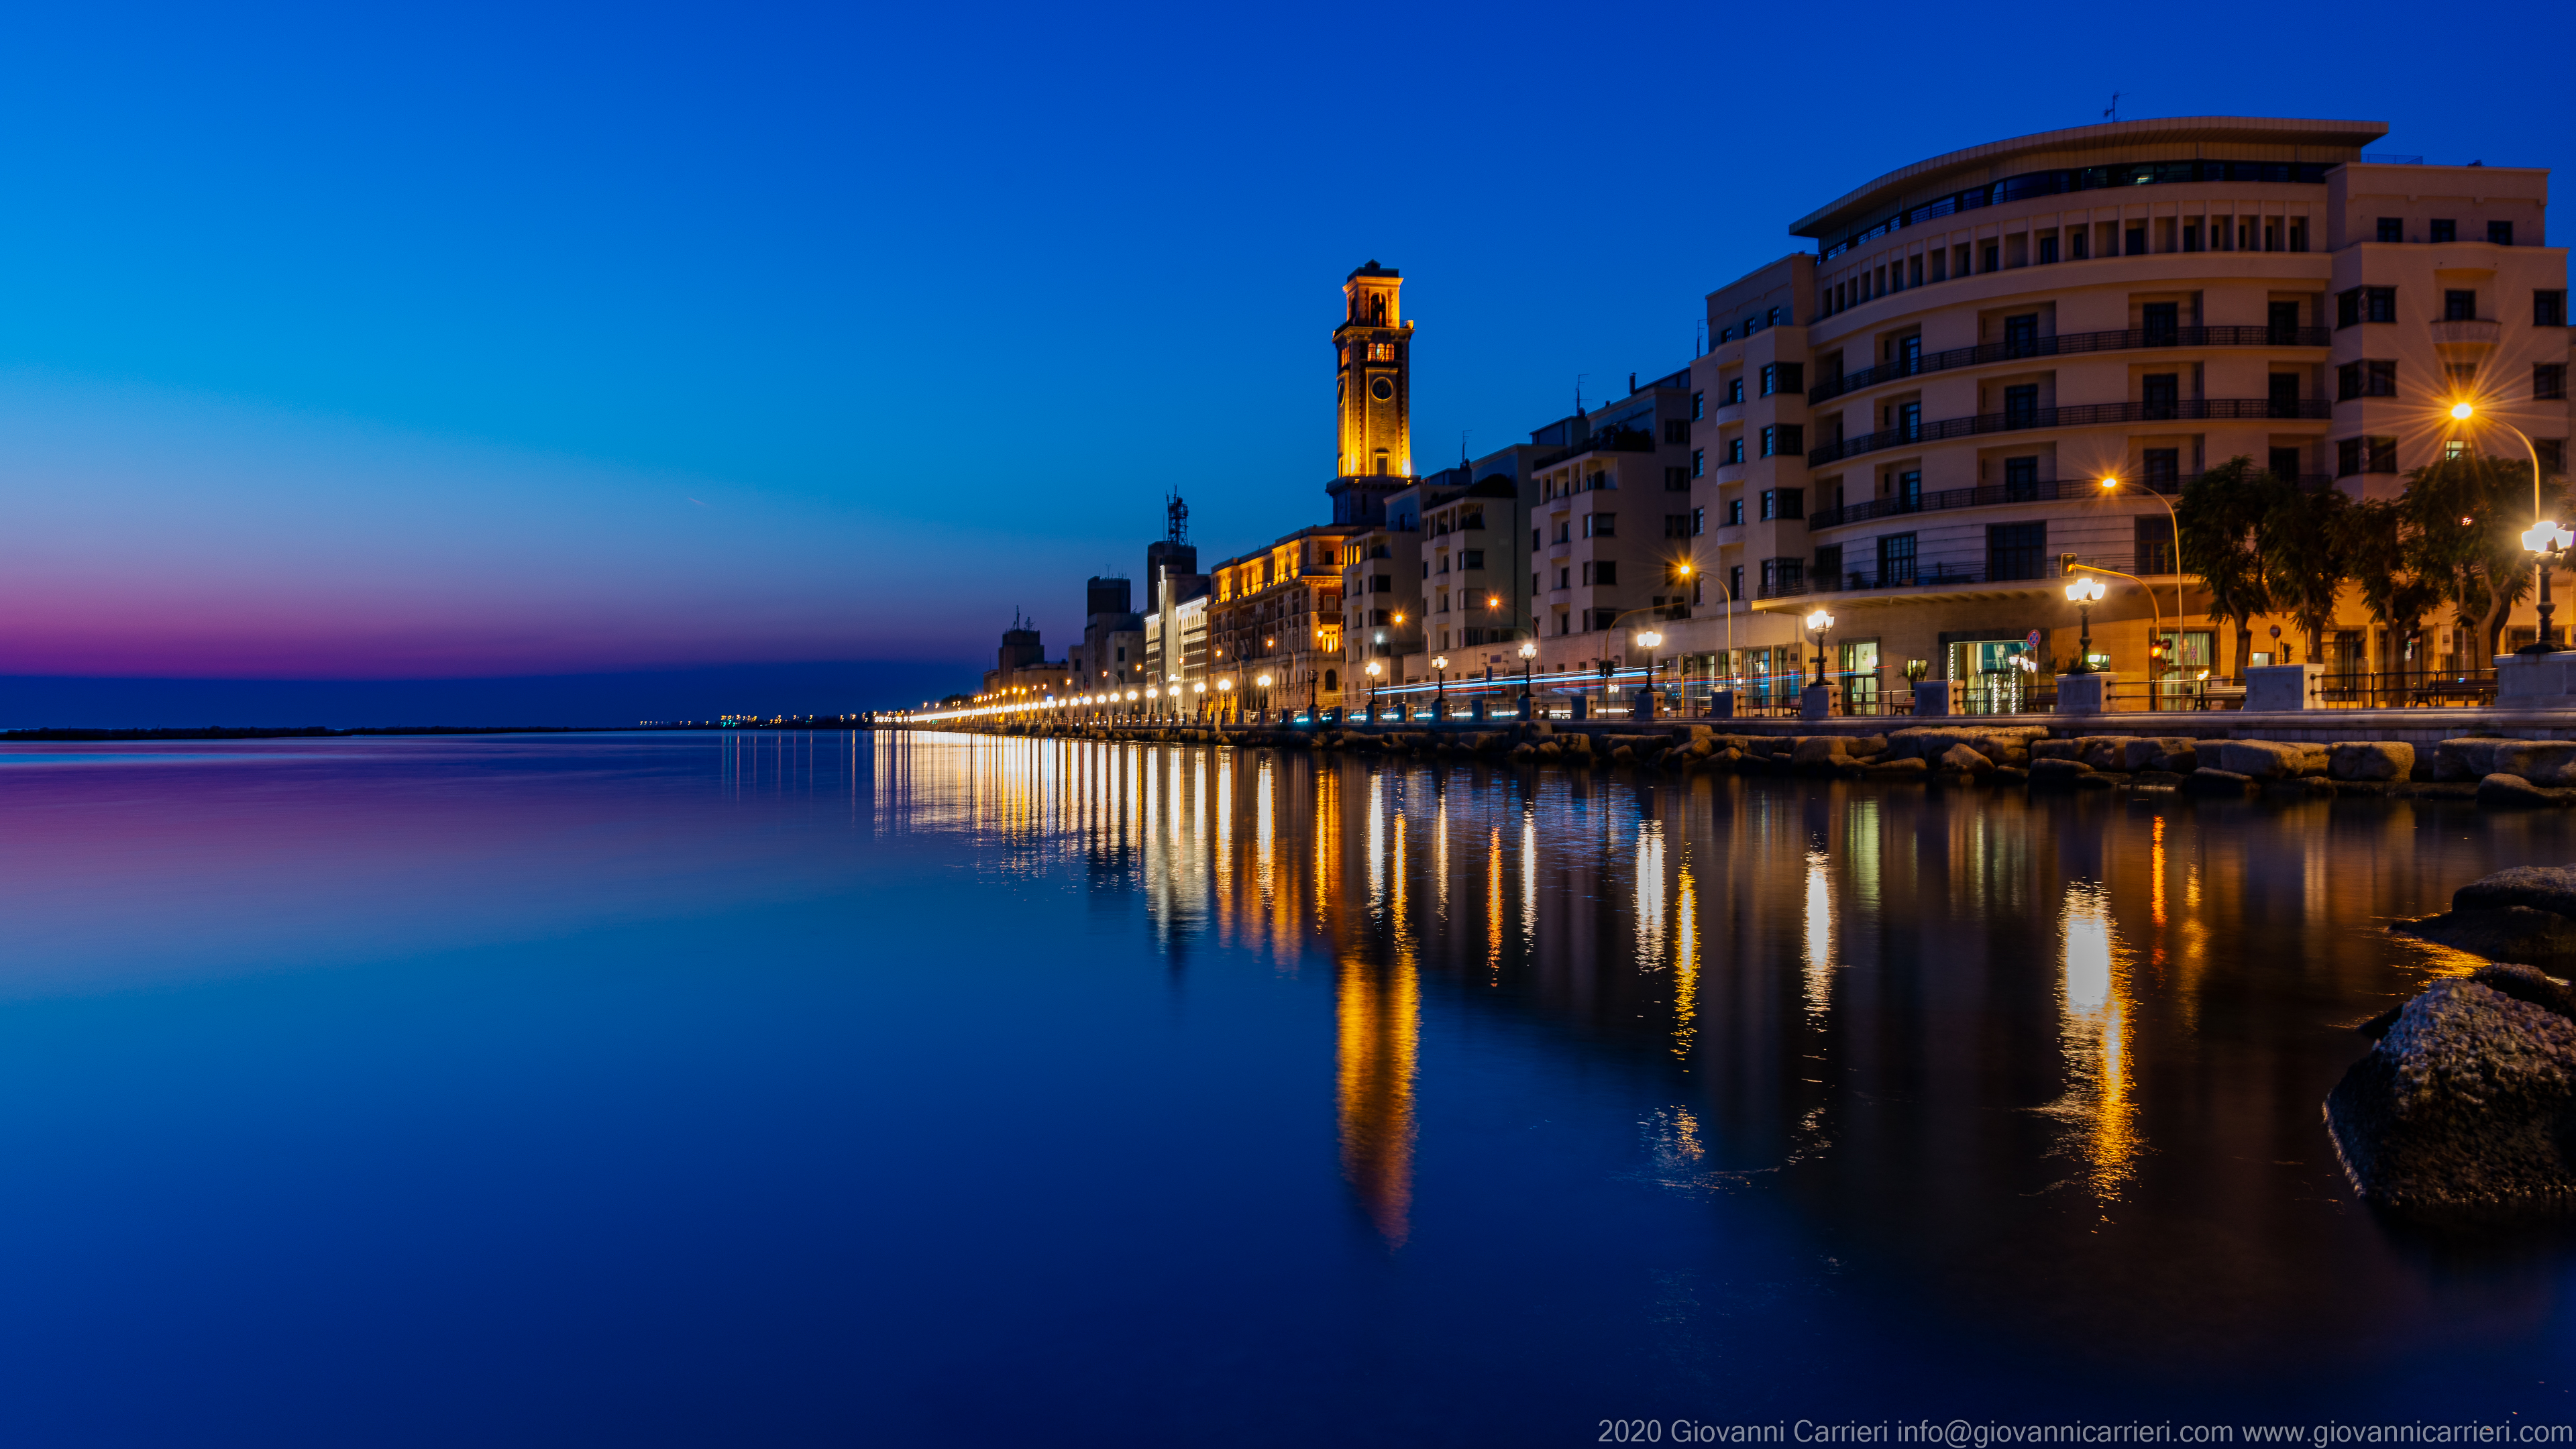 Promenade of Bari The seafront of bari at dawn, seen from Giannella roundabout towards east